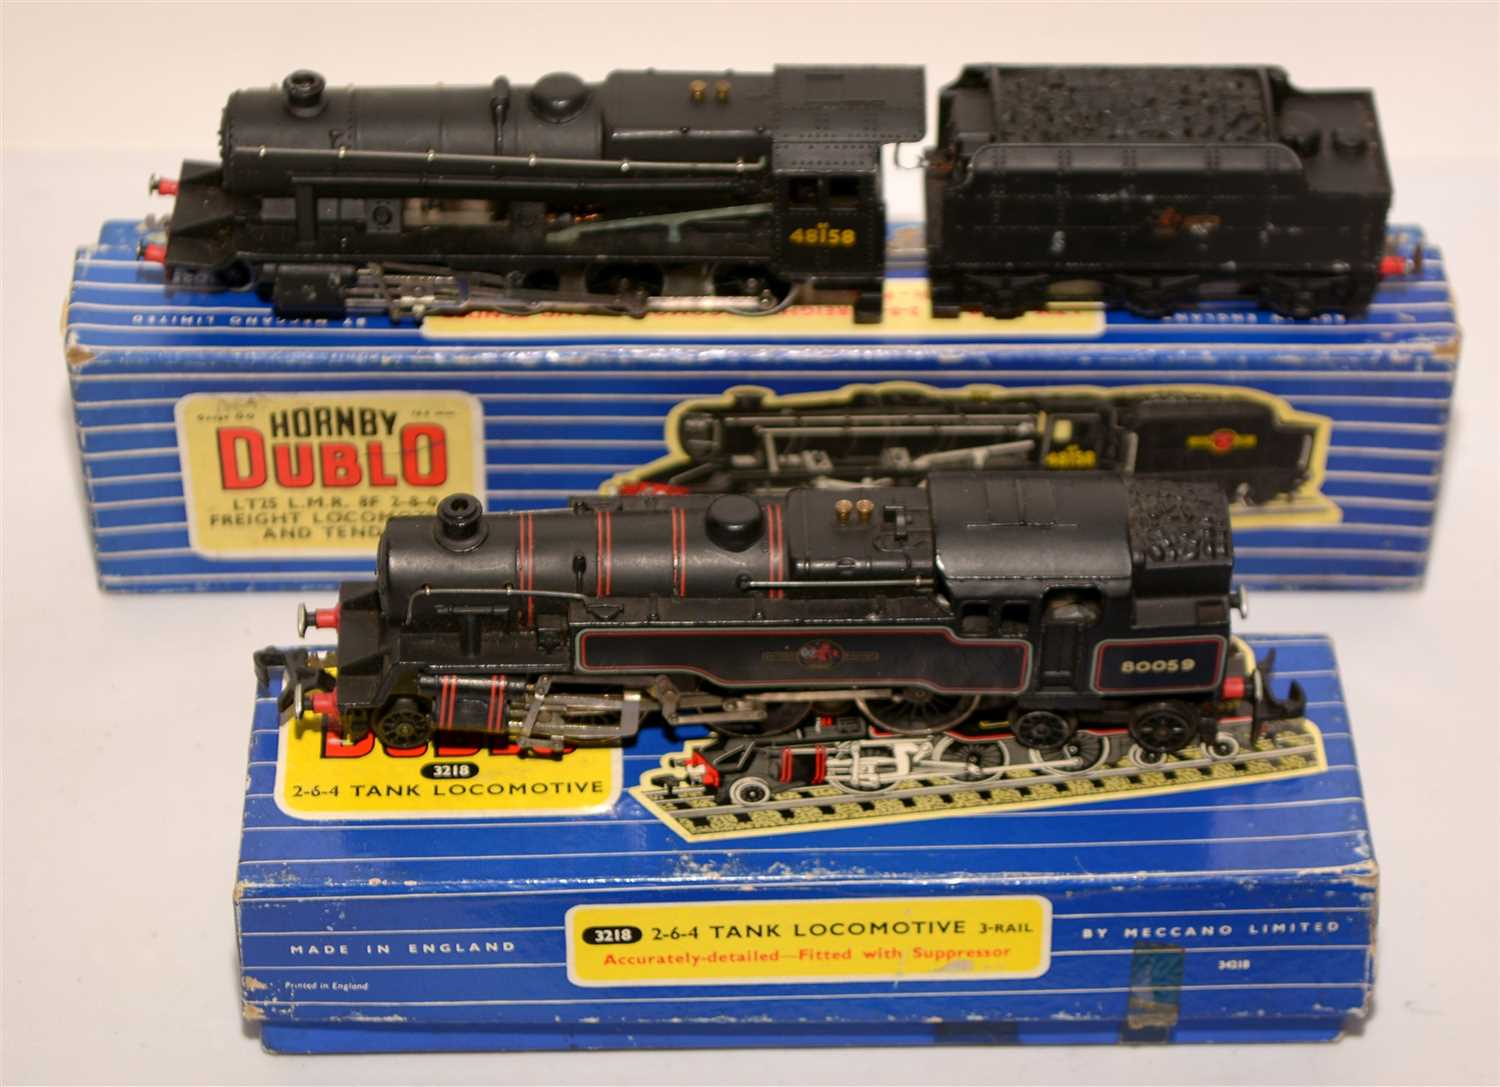 Lot 1397 - Hornby Dublo locomotives and tender.